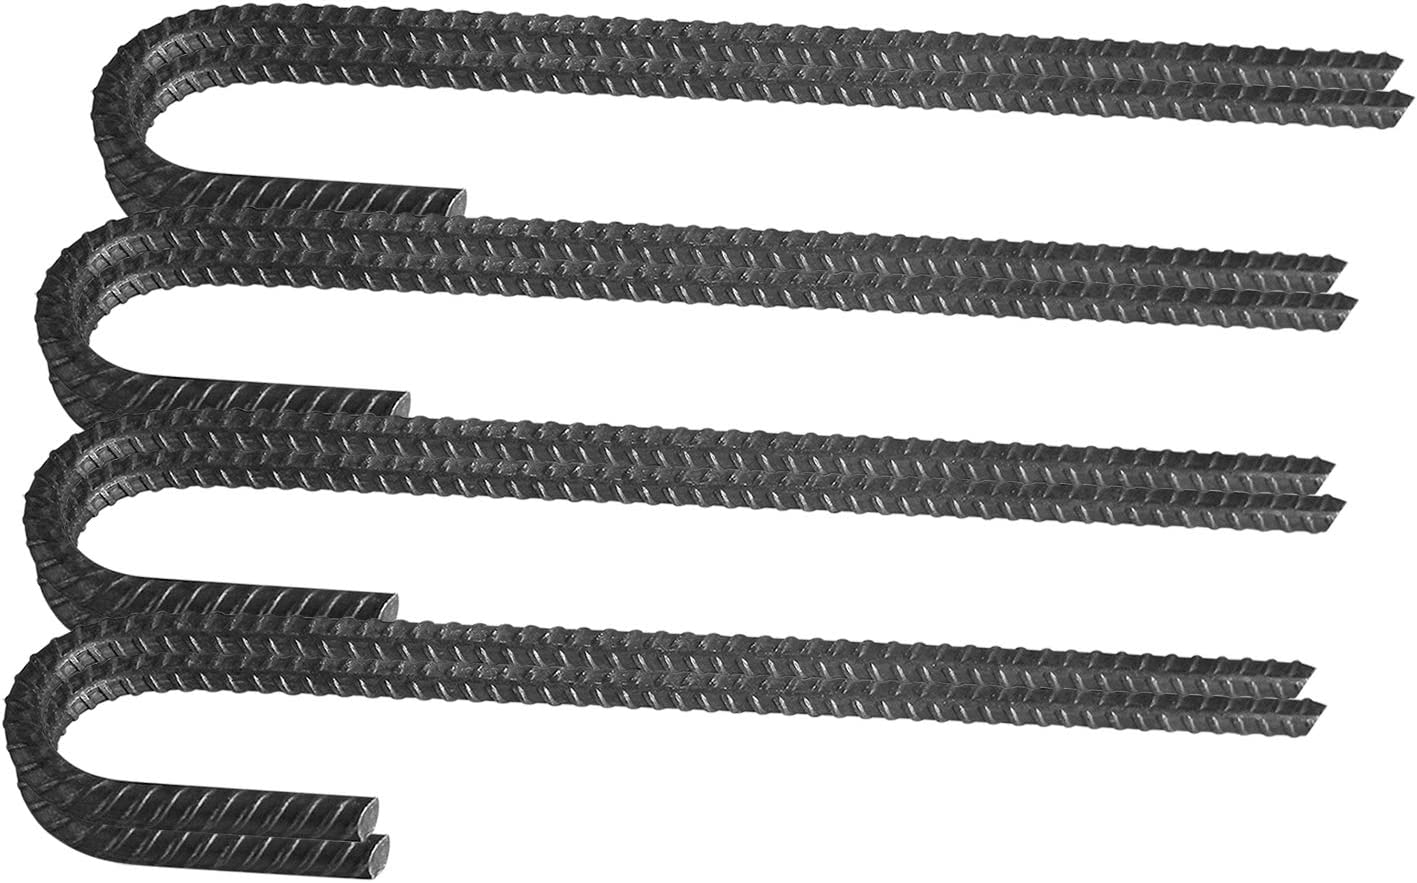 Pinnacle Mercantile 8 Pack Rebar Stakes J Hook Heavy Duty Steel Ground Anchors 12 inch Chisel Point End Made USA